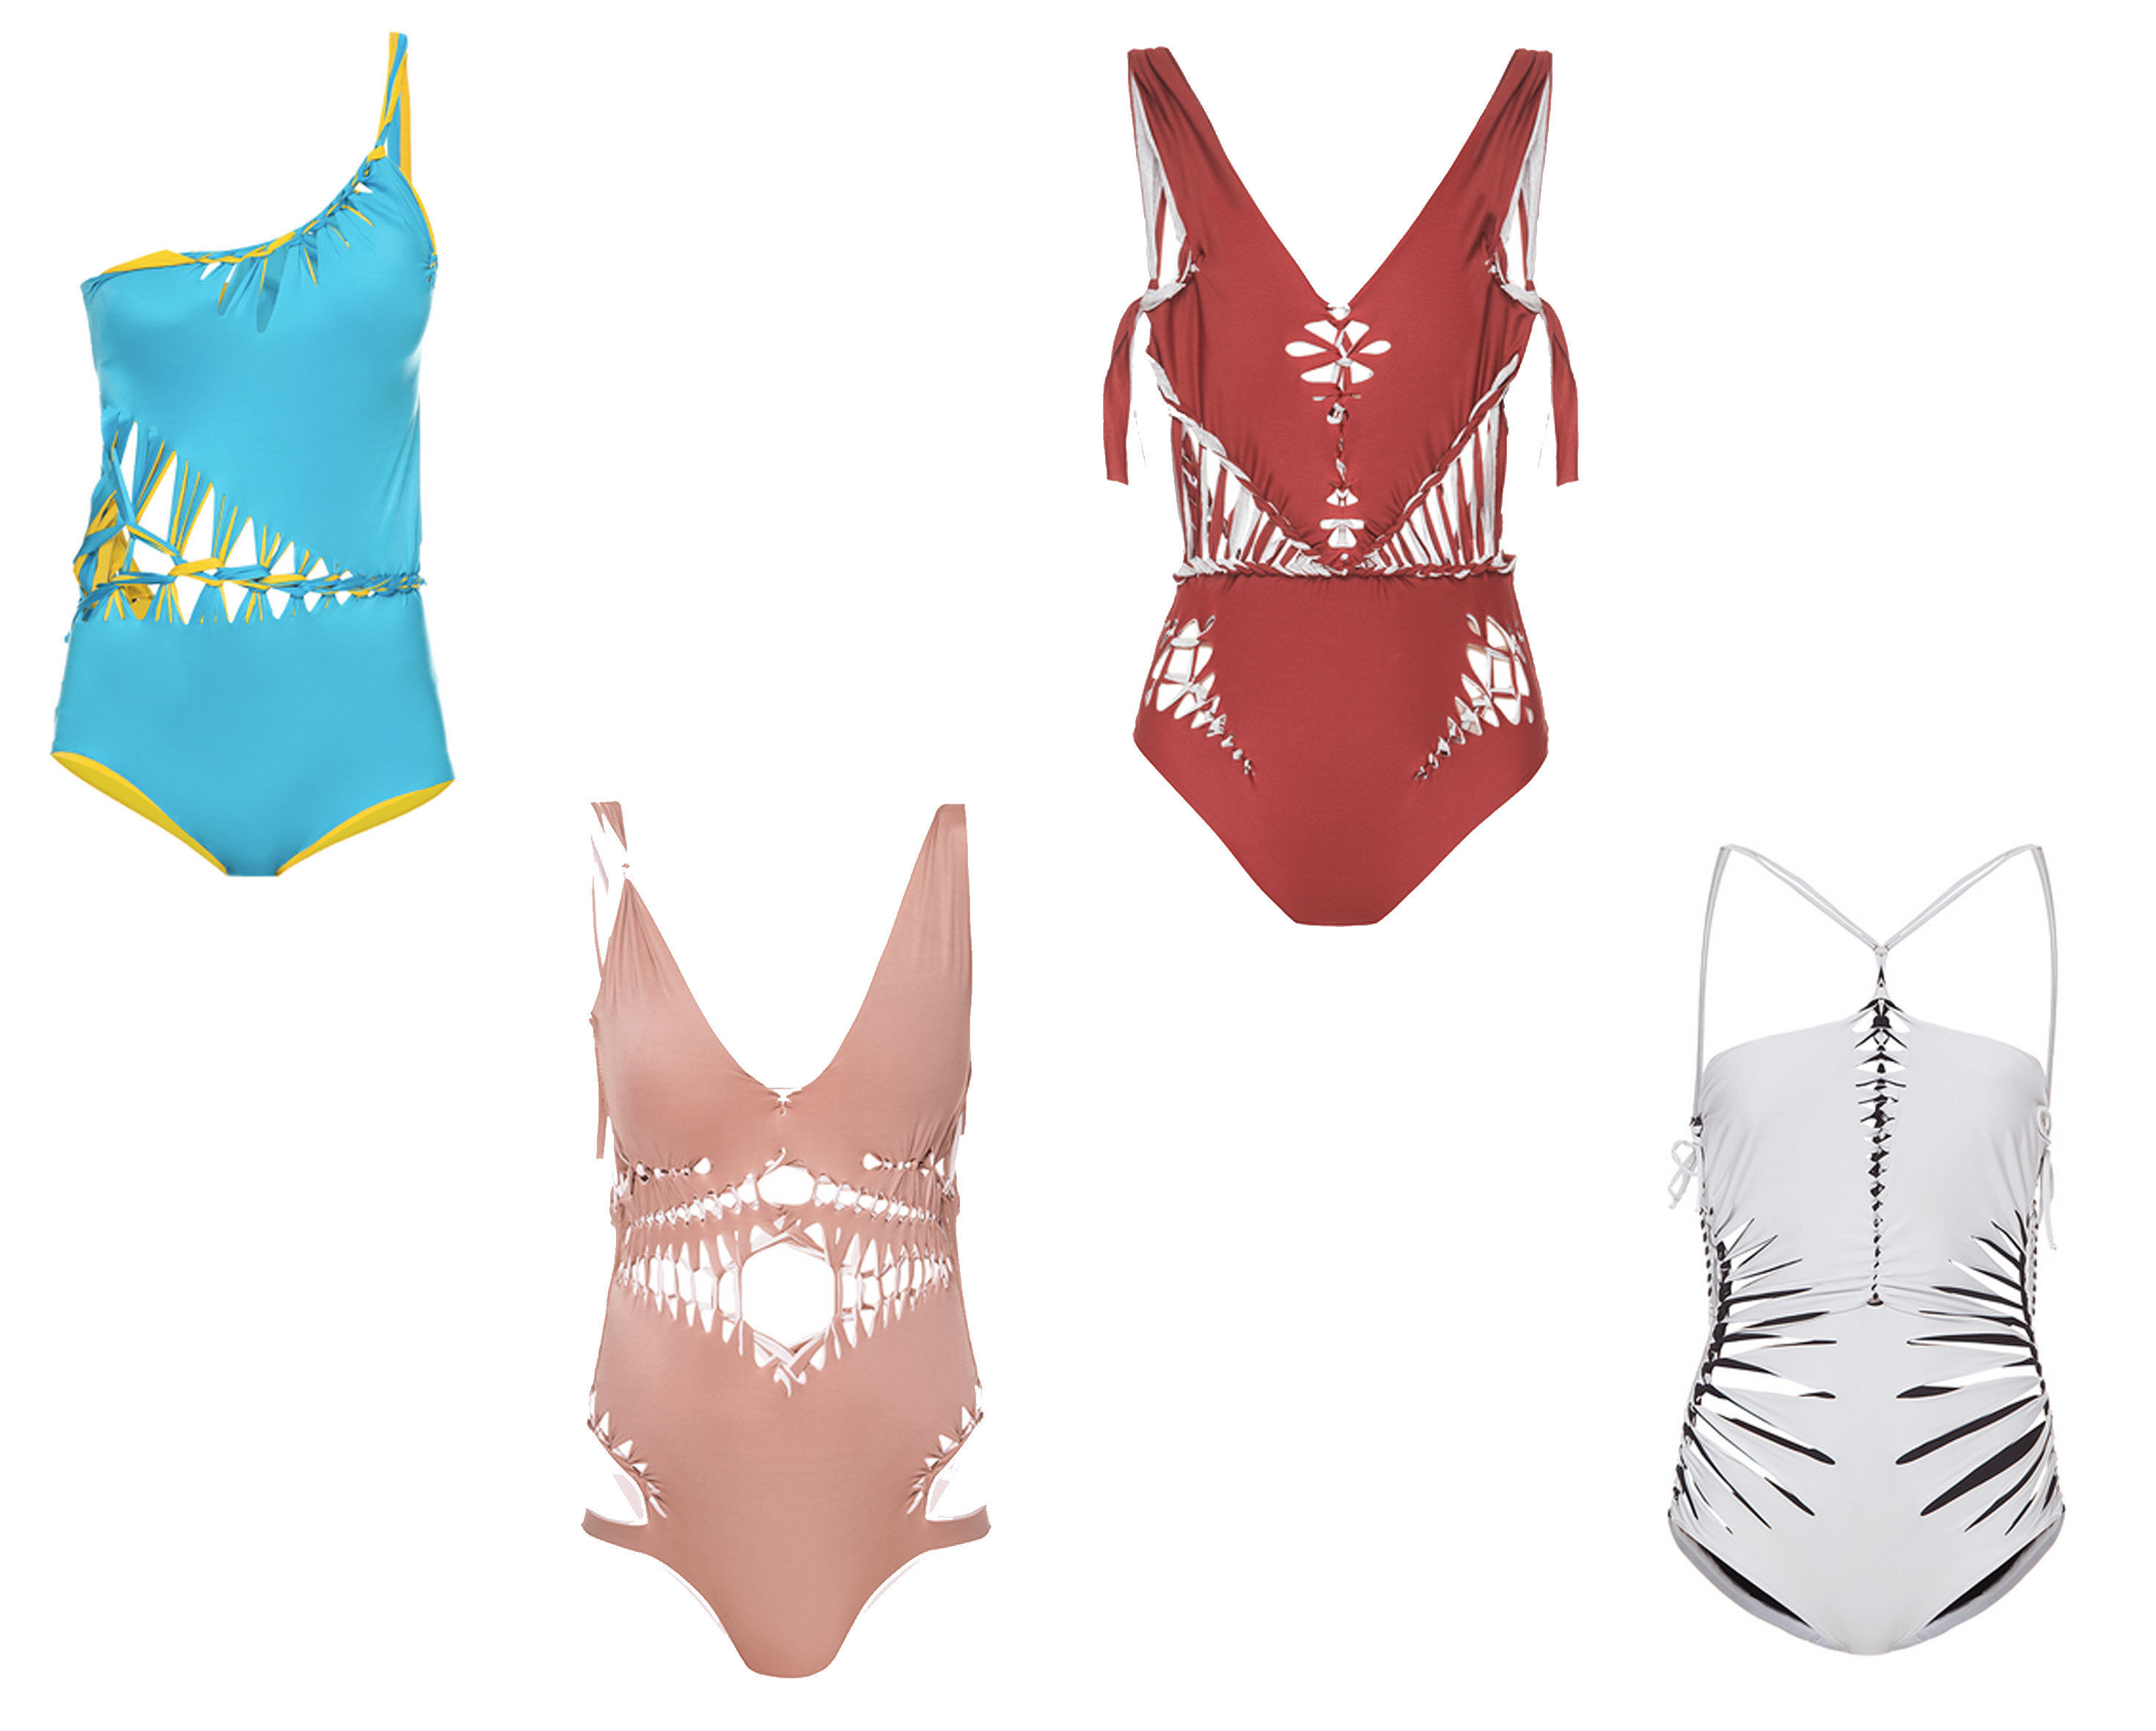 Which swimsuit will you choose ?